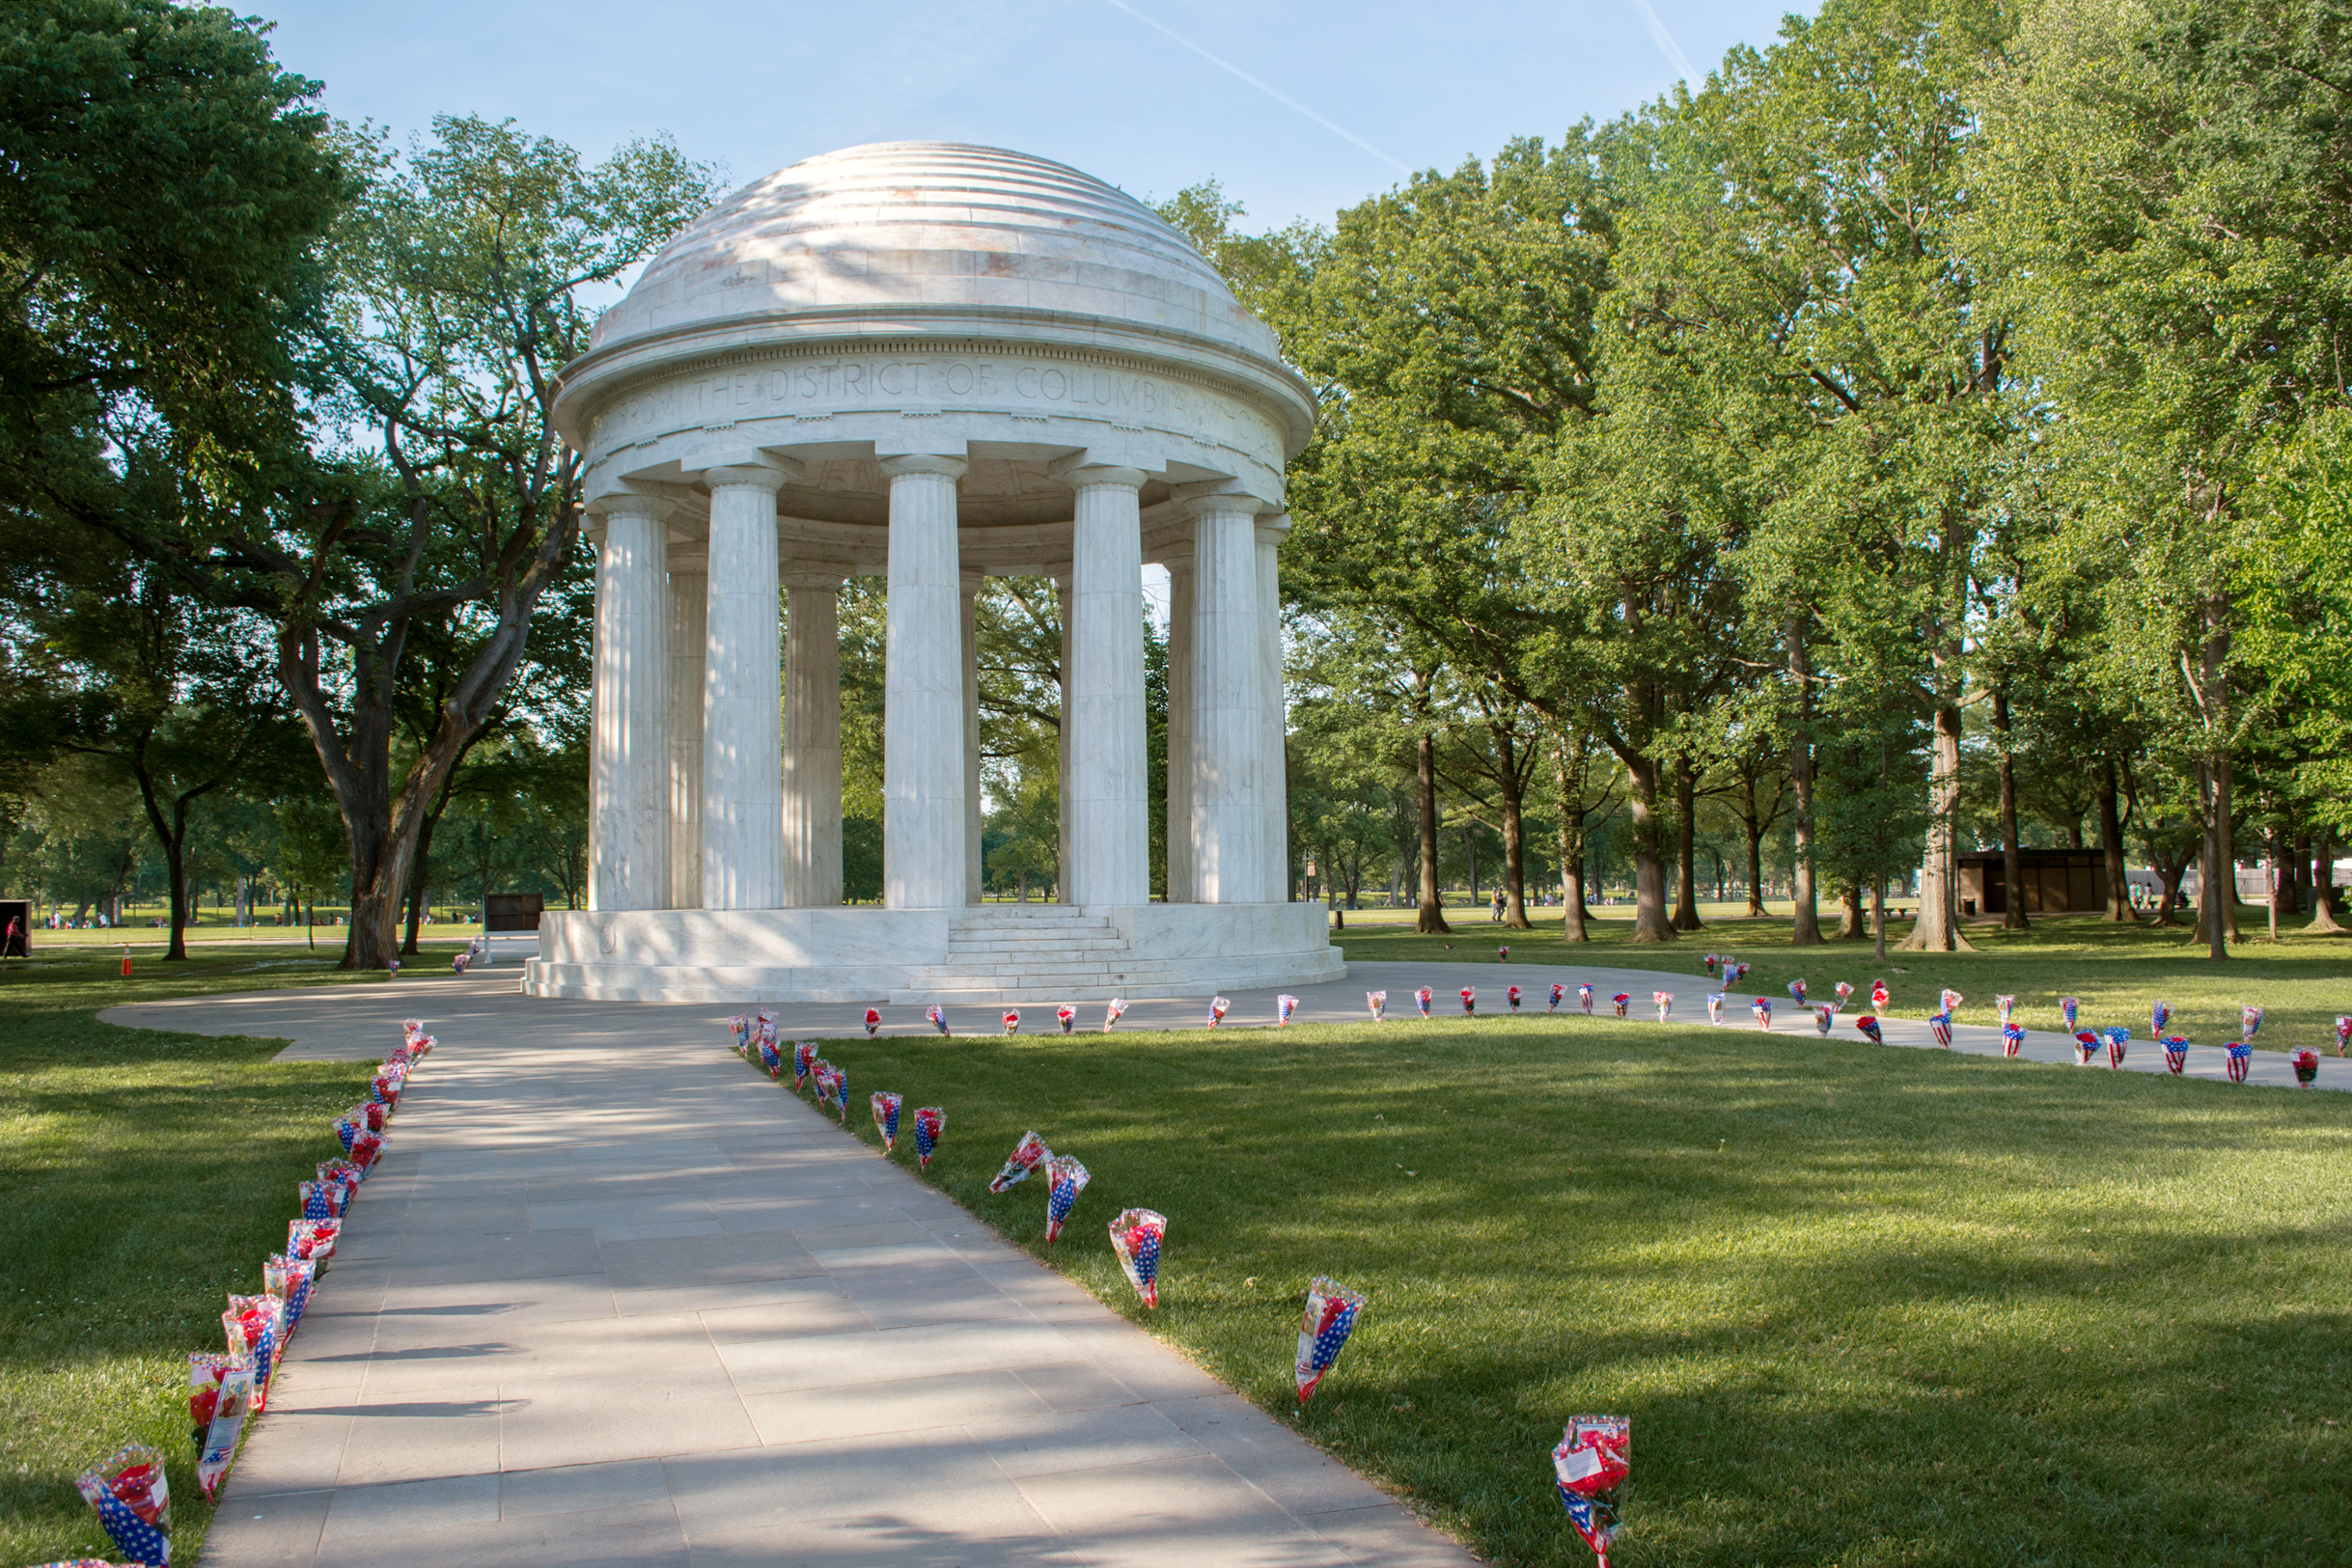 The District of Columbia War Memorial is often missed on the National Mall, though recent restorations and the centennial of World War I have renewed public interest. Photo courtesy of Tim Evanson, Wikimedia.